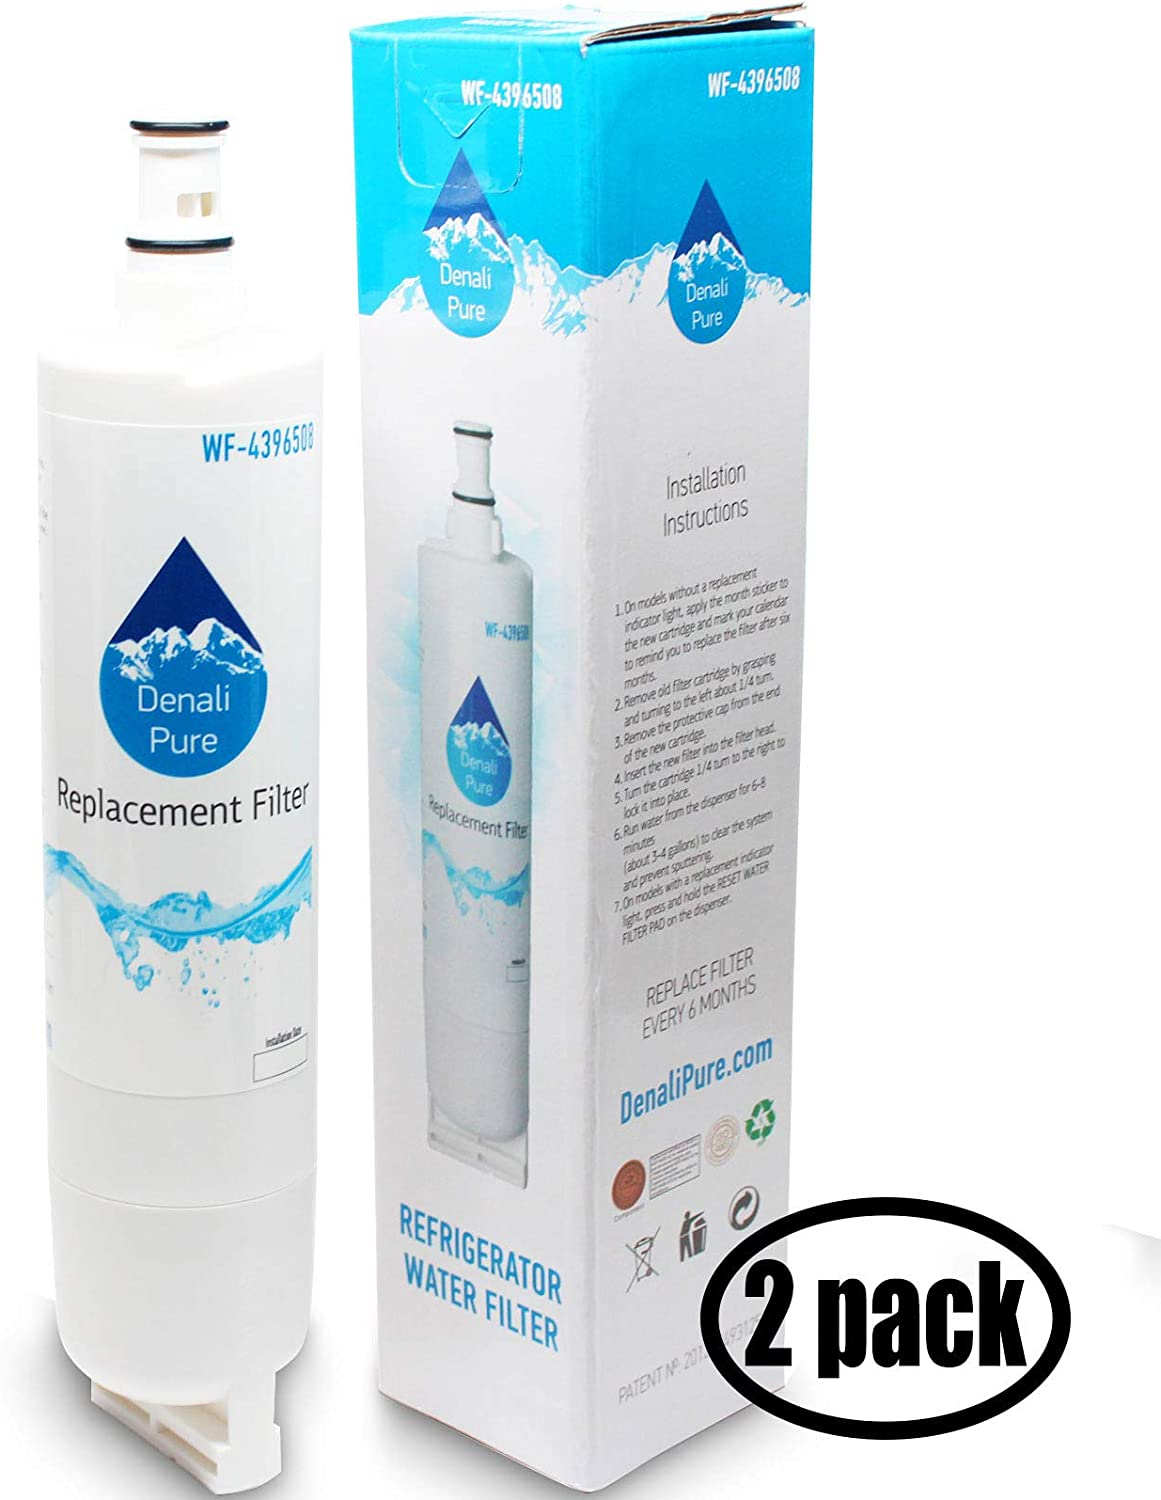 2-Pack Replacement for for KitchenAid KSBP25FKSS02 Refrigerator Water Filter - Compatible with with KitchenAid 4396508, 4396509, 4396510 Fridge Water Filter Cartridge